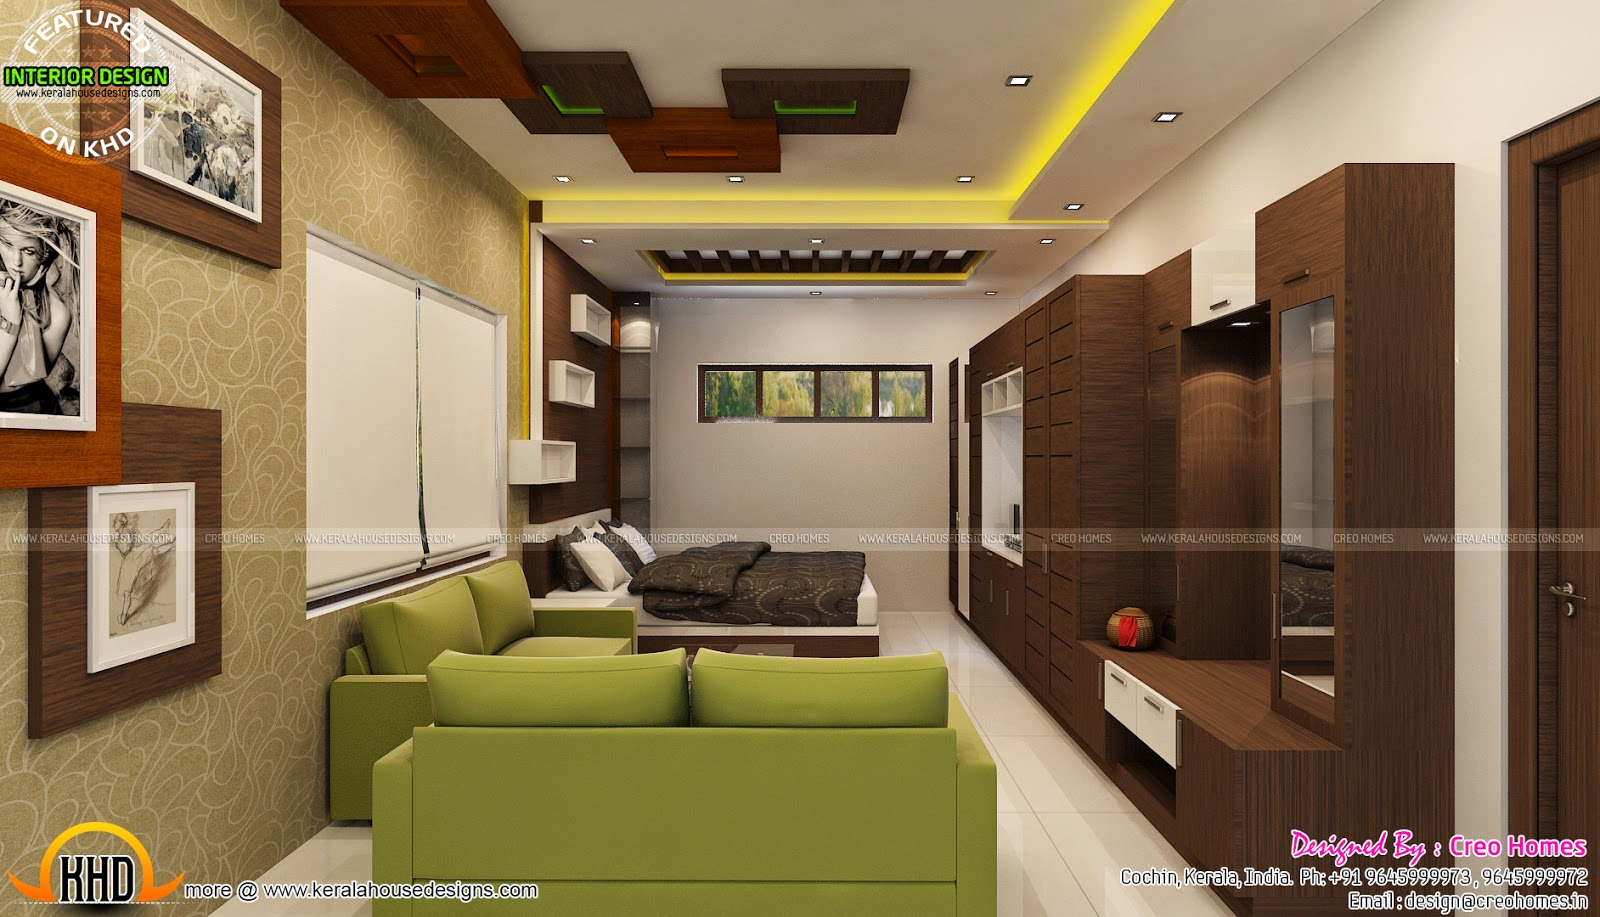 Living prayer kitchen interiors kerala home design and for Kerala home living room designs